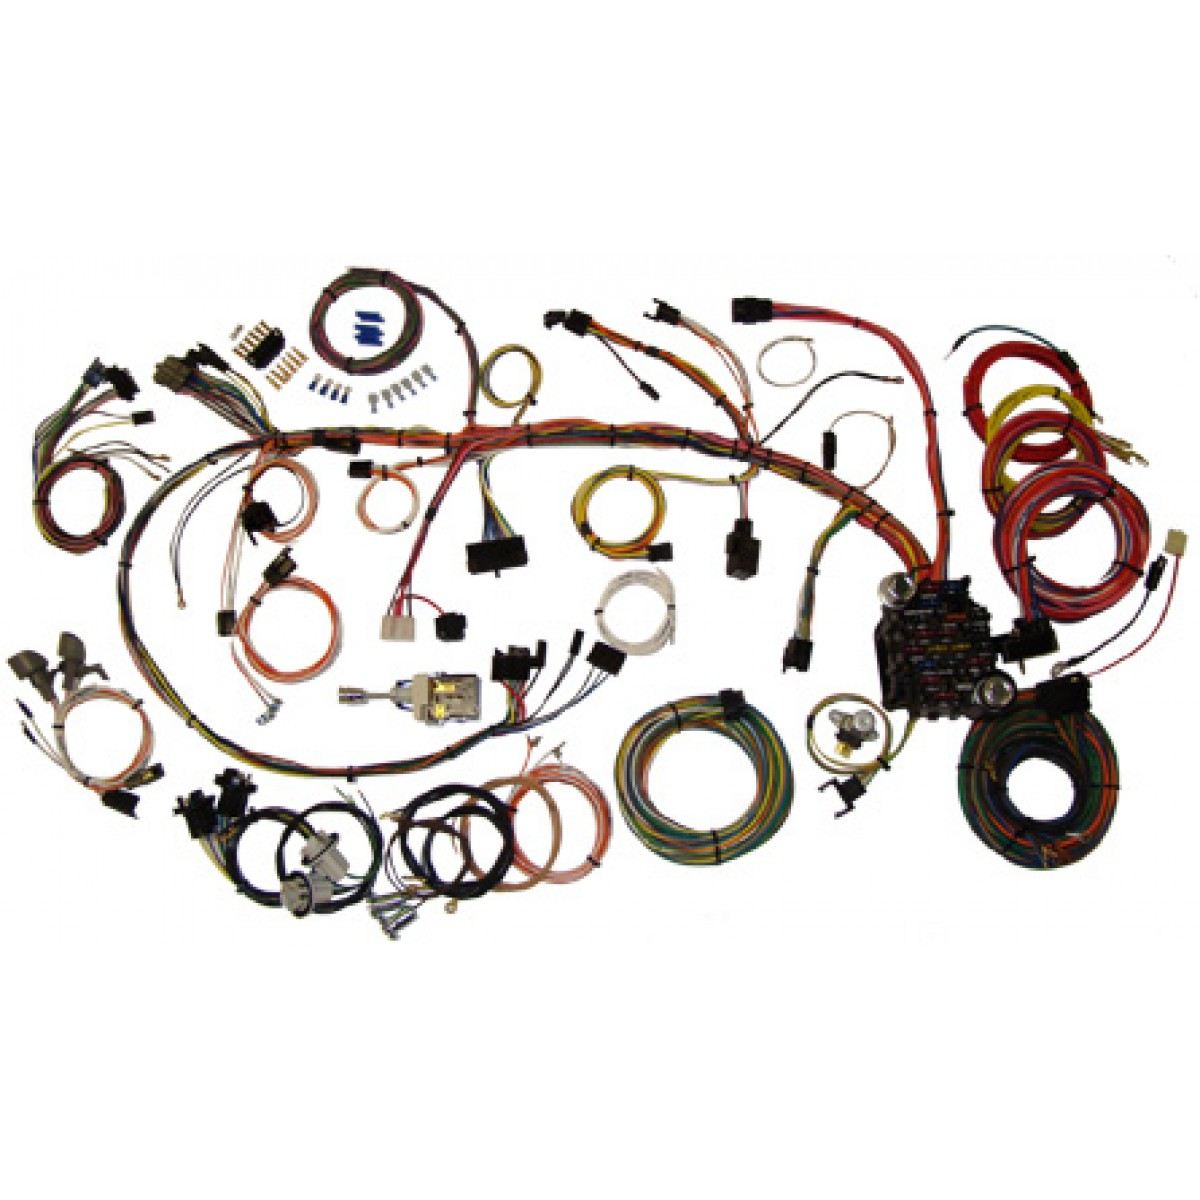 hight resolution of camaro wiring harness kit 1970 1973 camaro part 510034 1970 70 camaro wiring harness